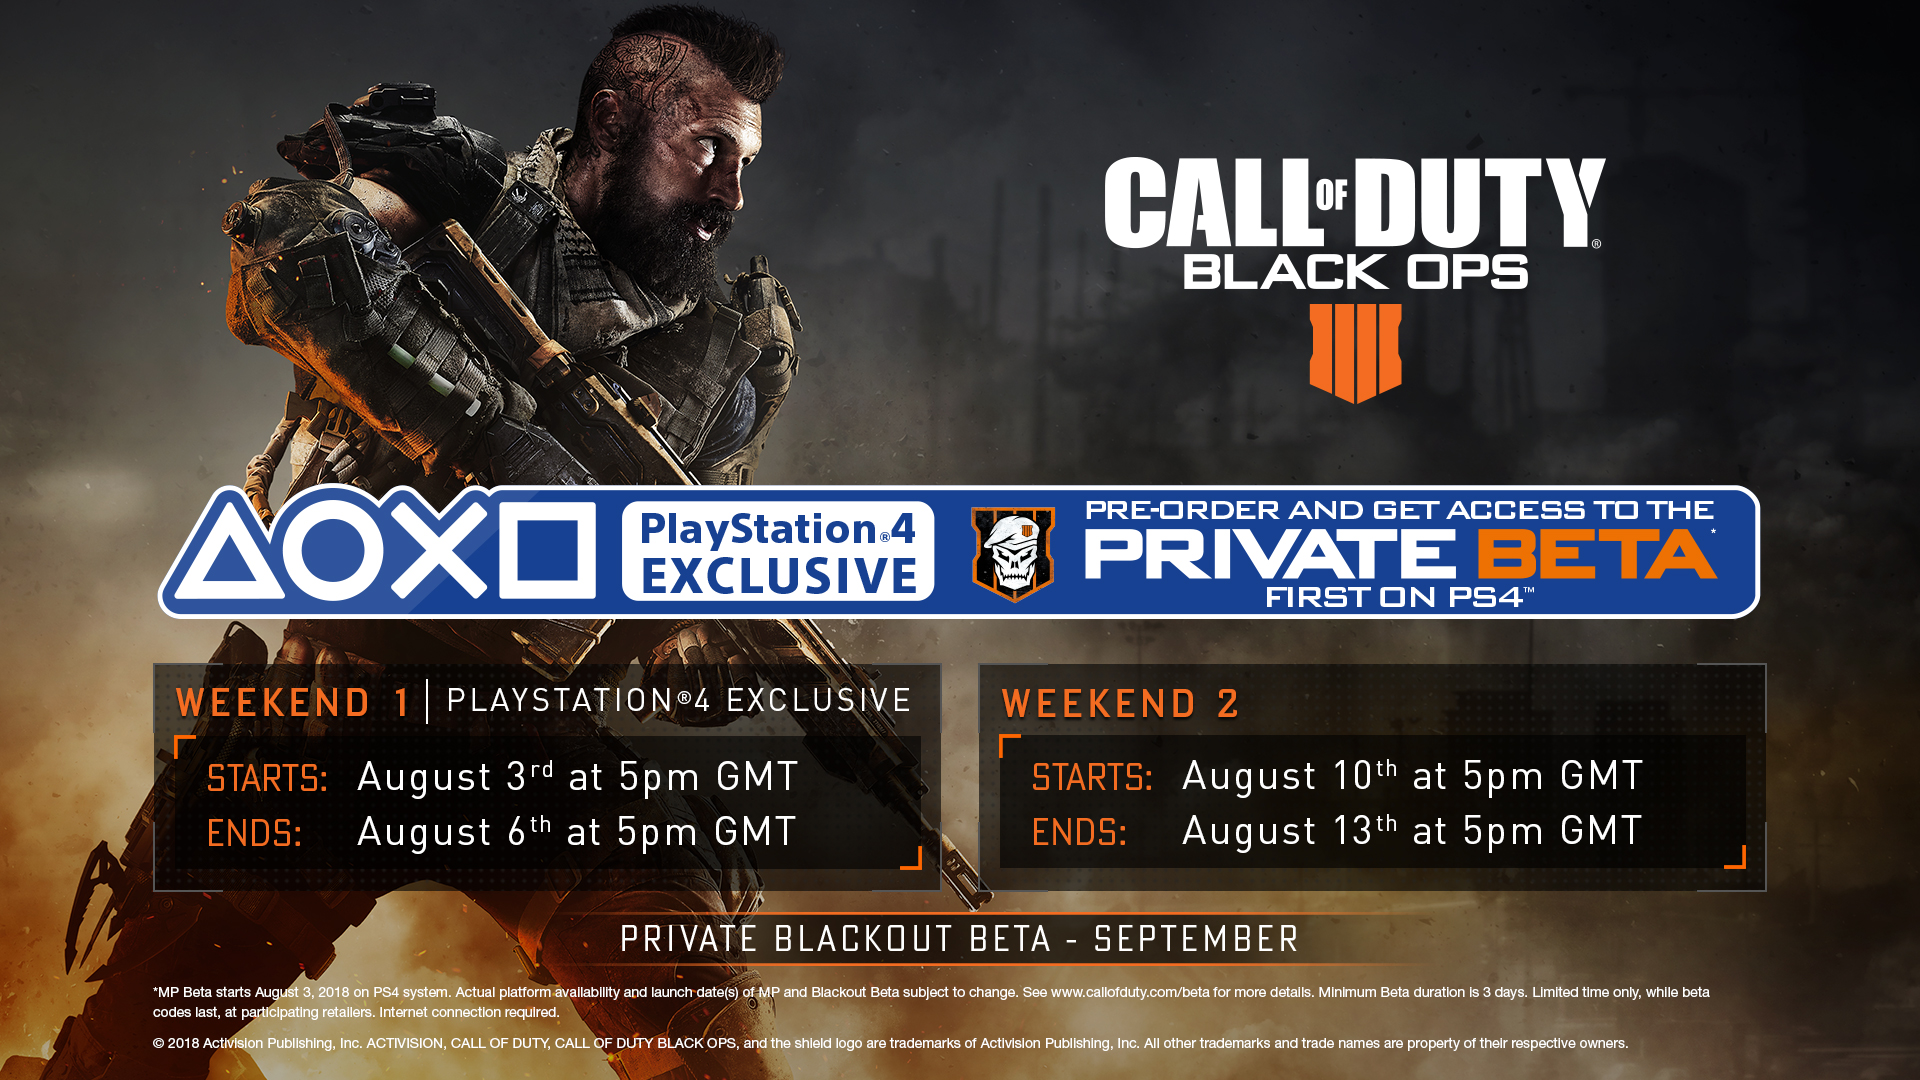 6493998fec8f Available to those who have pre-ordered Black Ops 4 for PlayStation 4